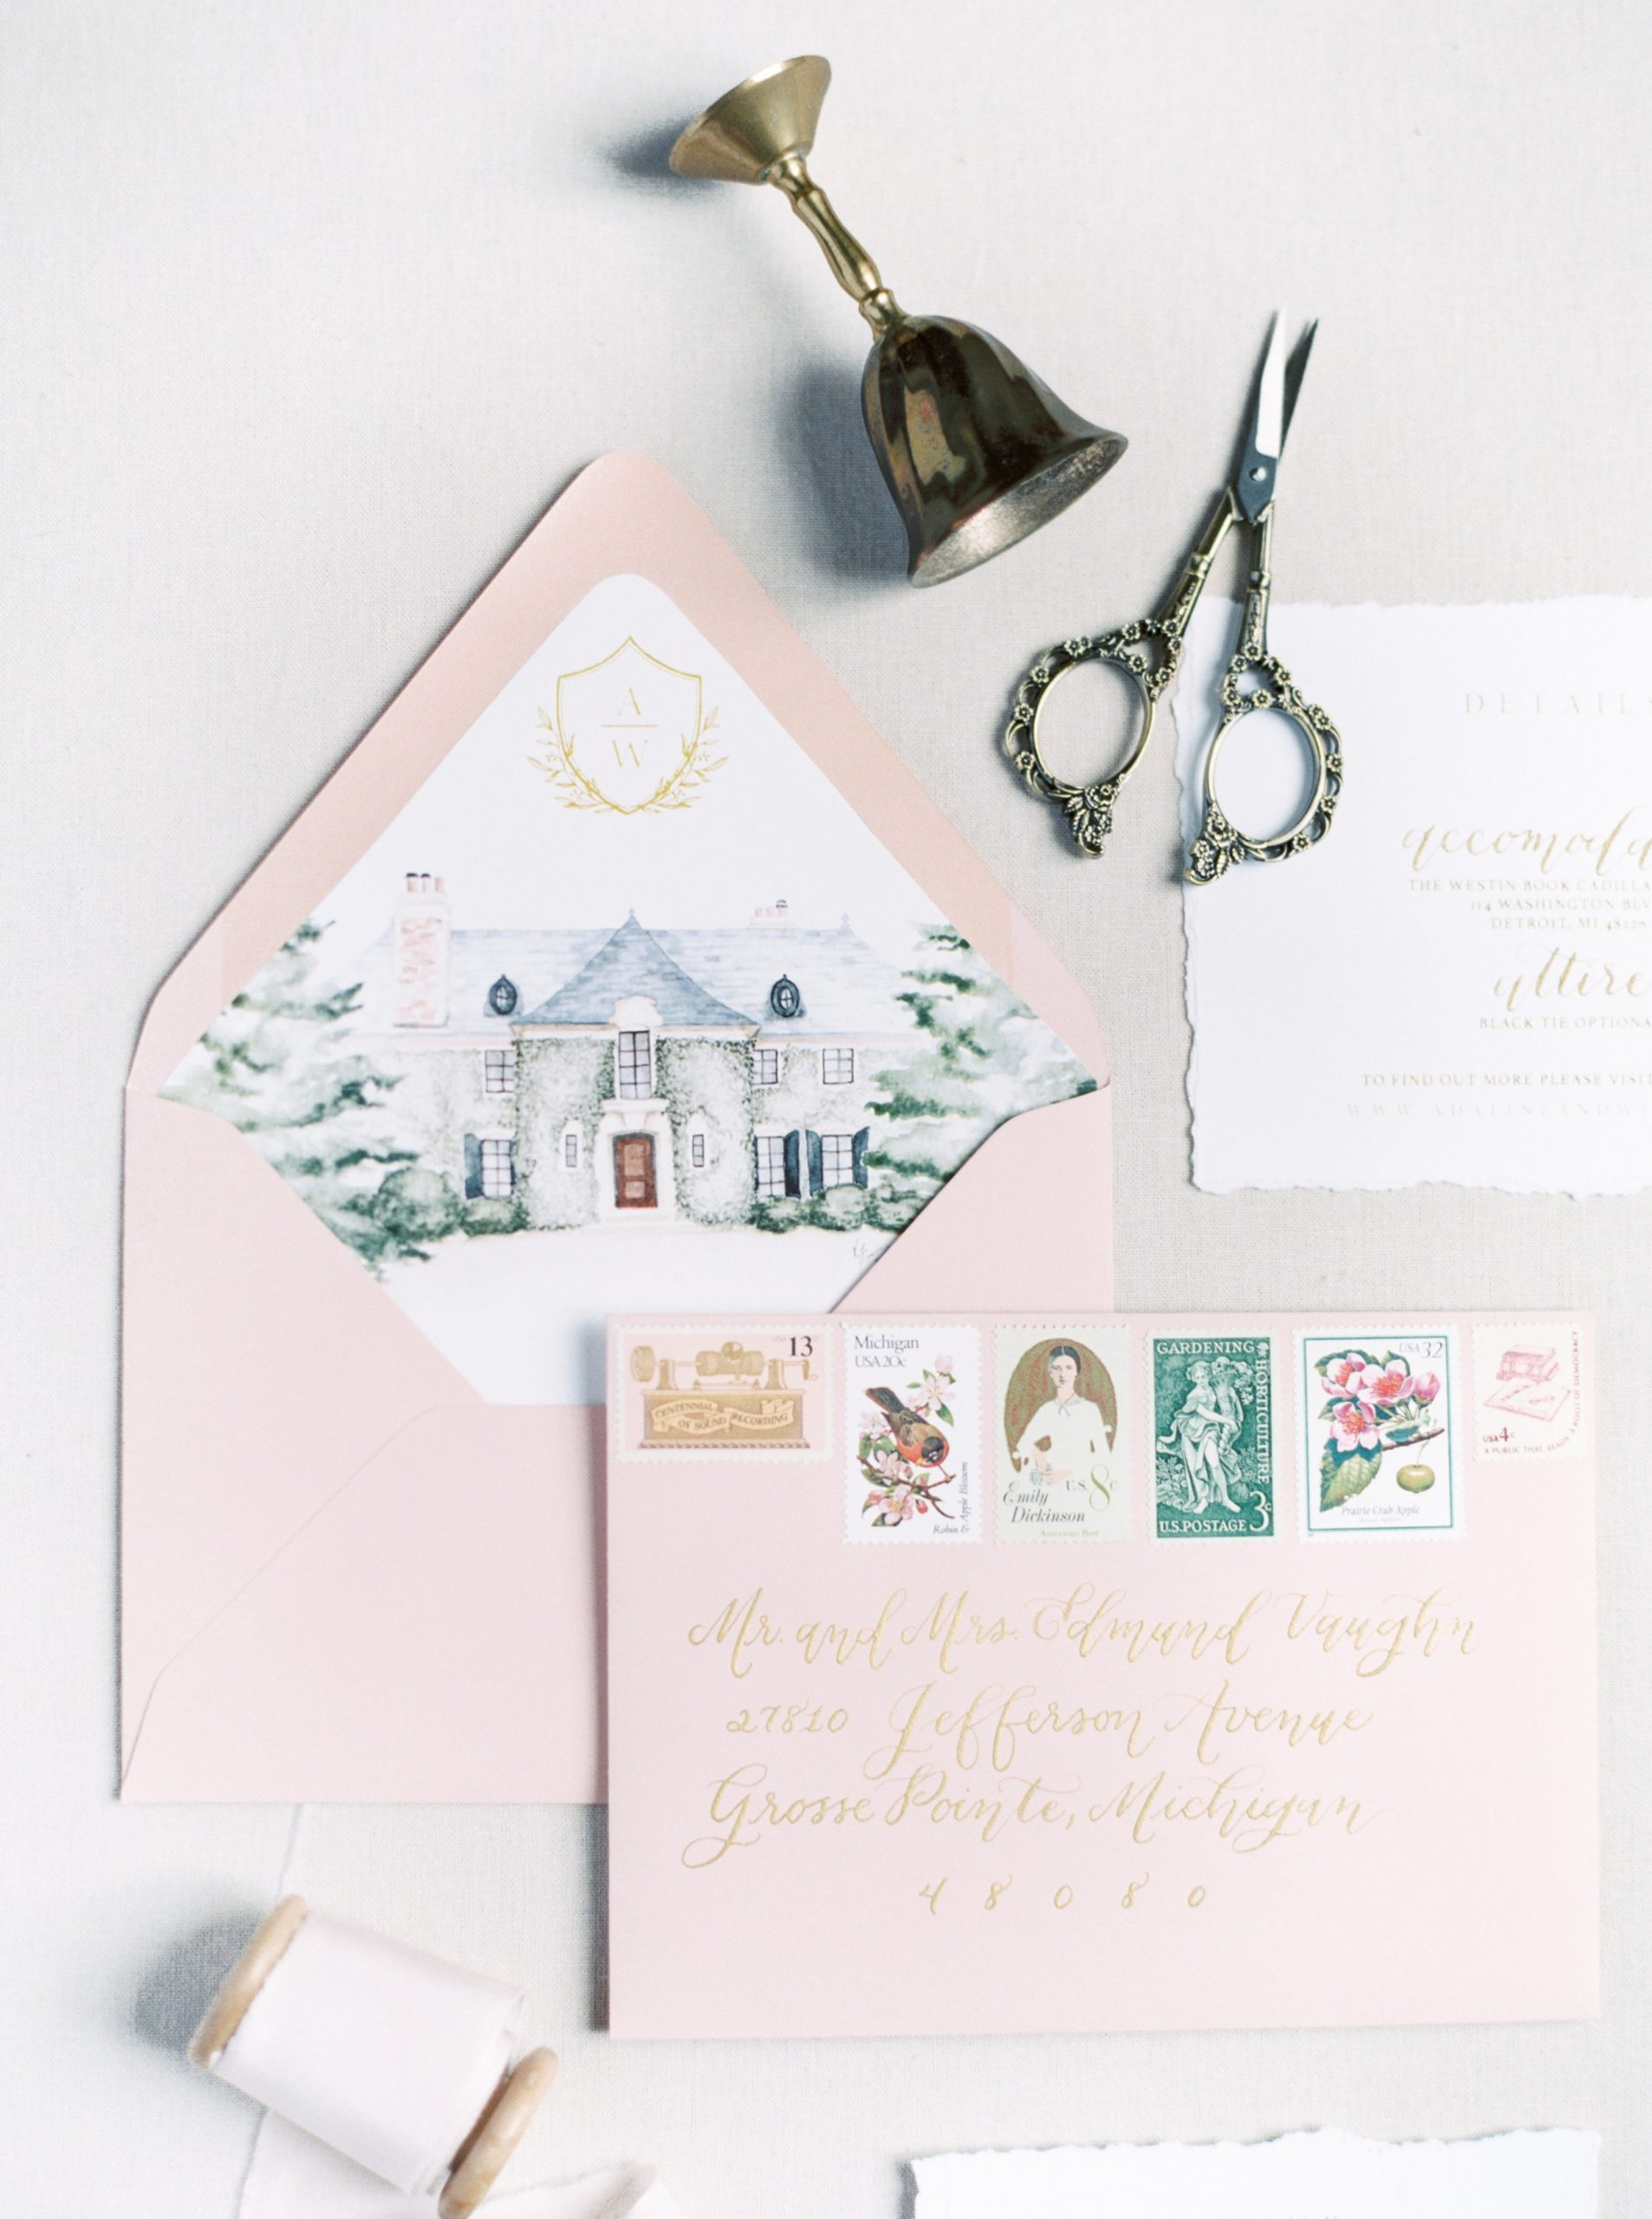 Blush Pink and Watercolor Wedding Invitations